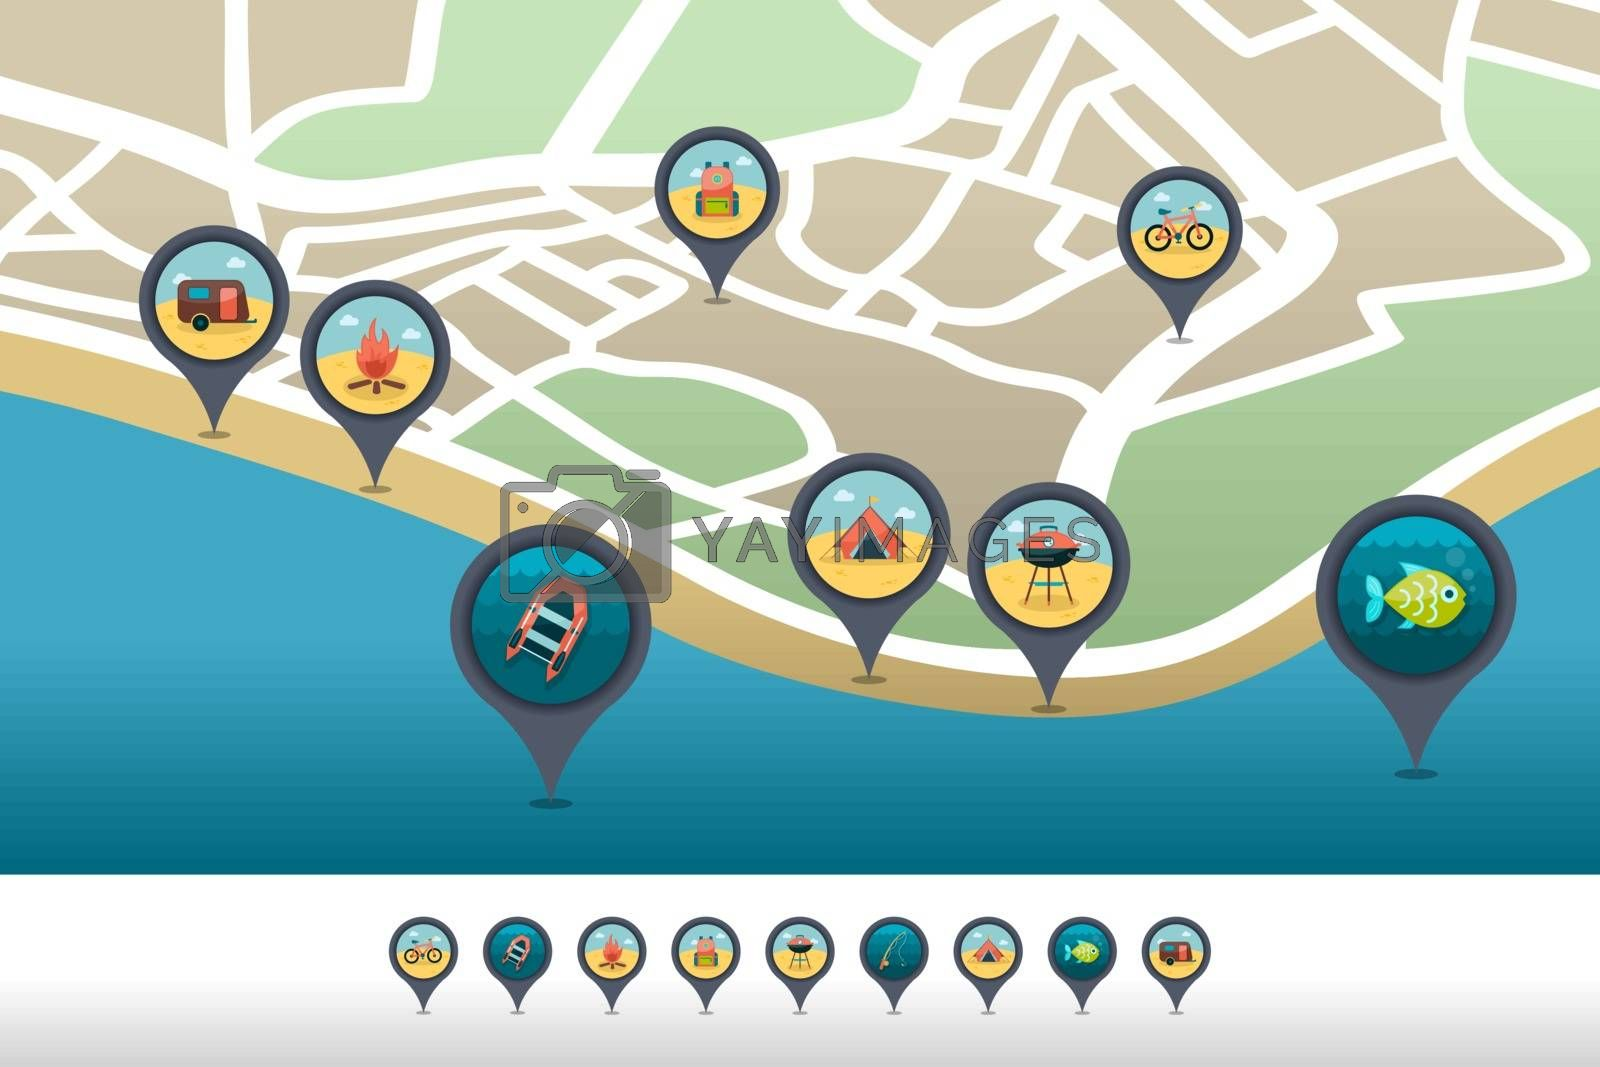 Summer camping pin map icon located on the map by nosik